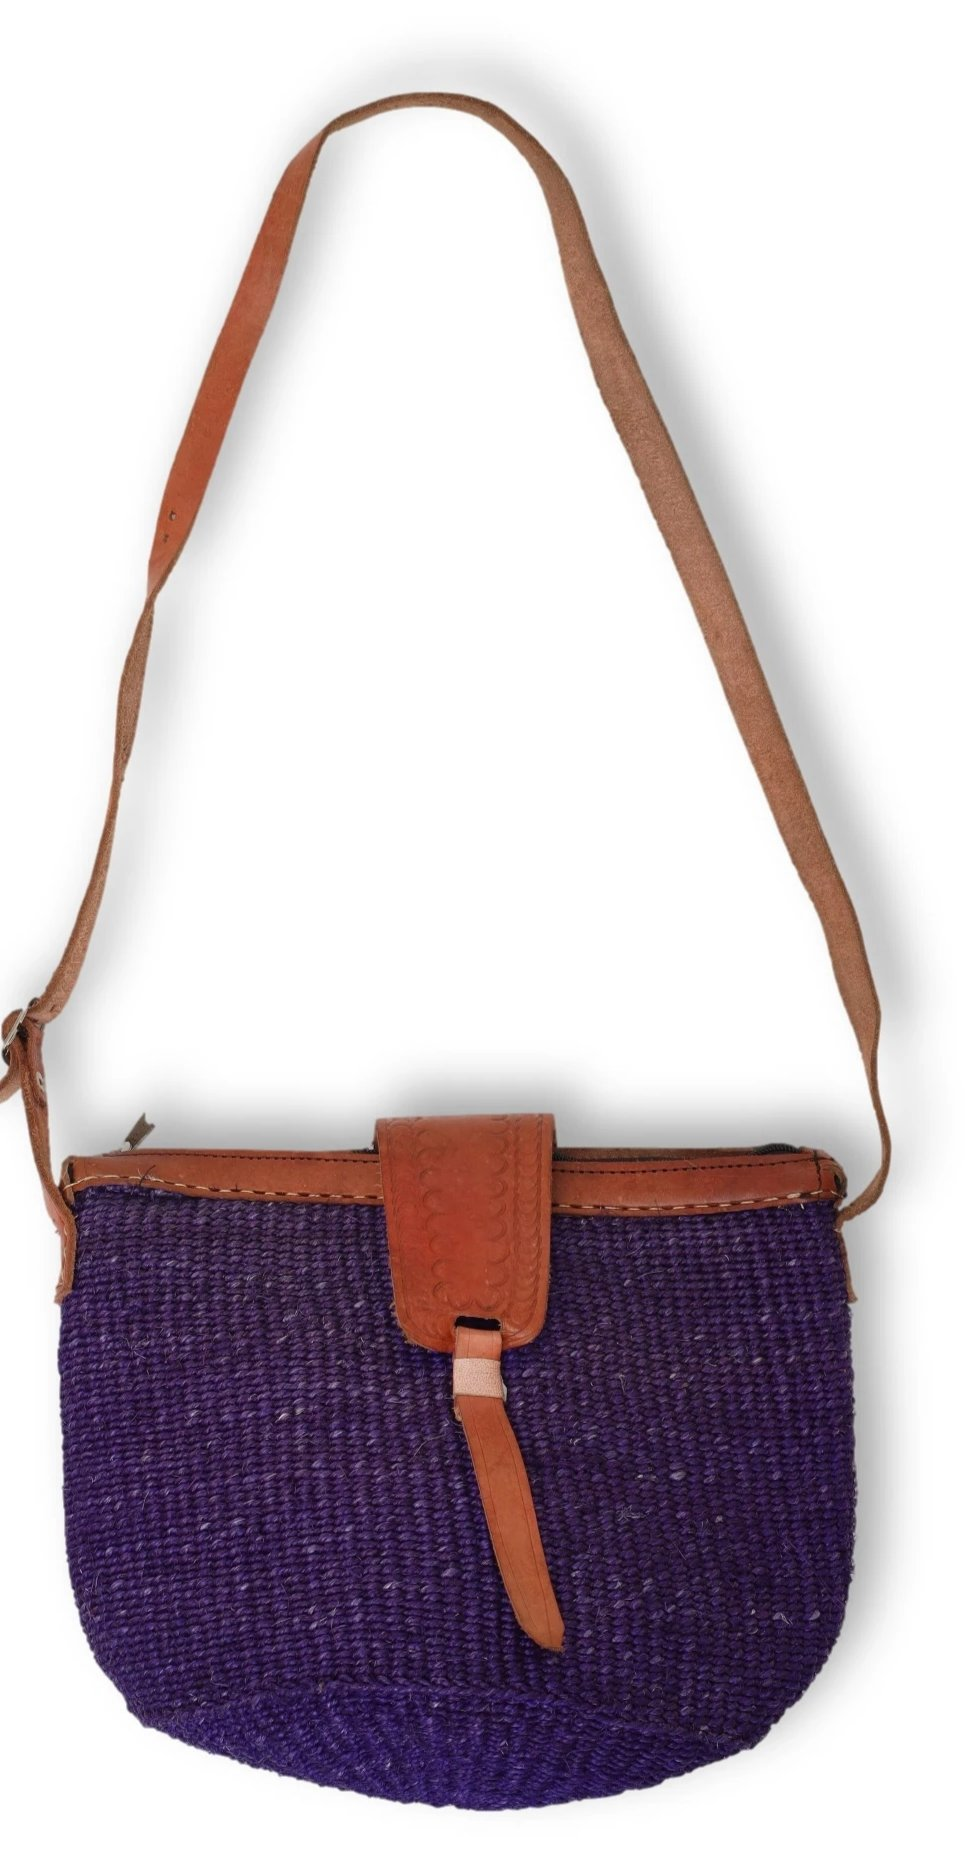 The Watamu Bag I.